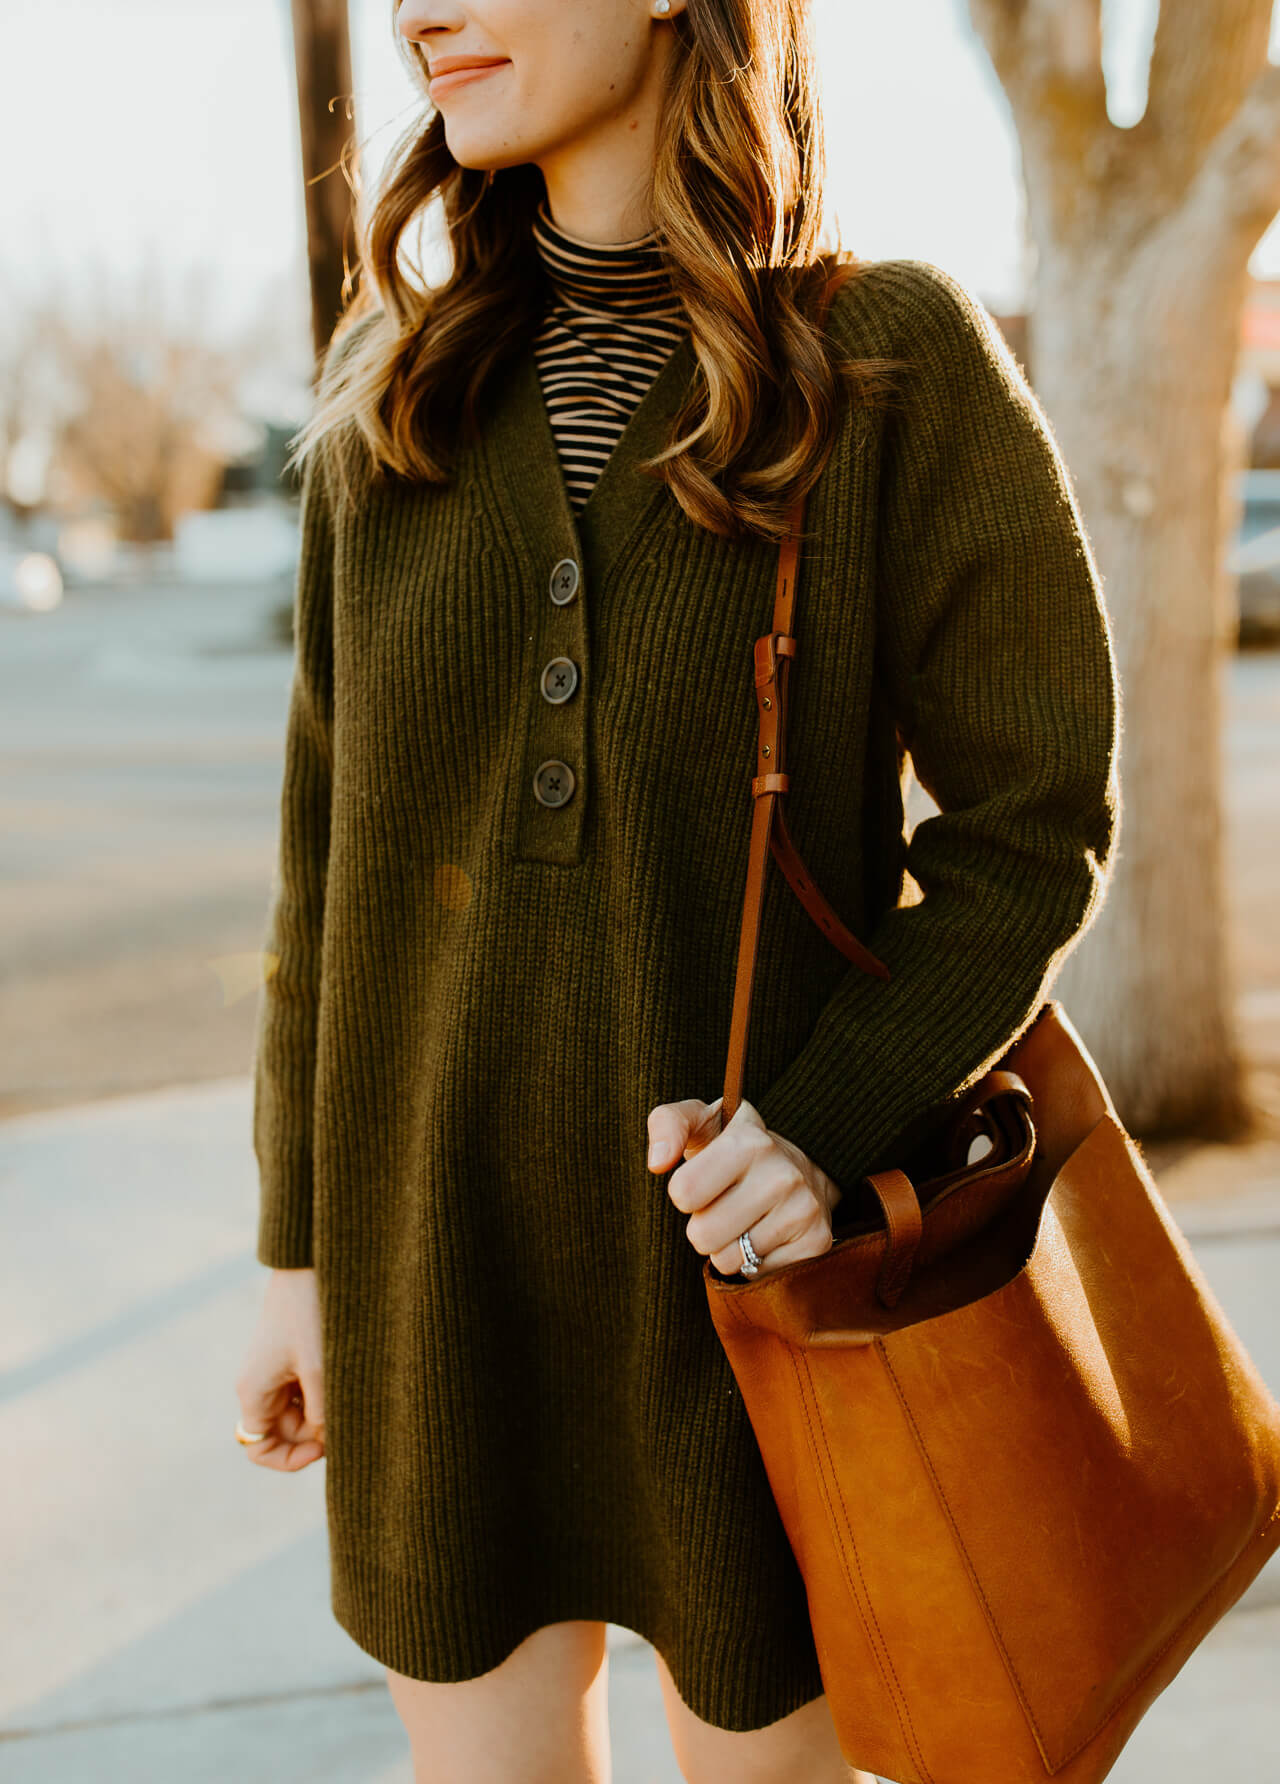 turtleneck layered with sweater dress - M Loves M @marmar